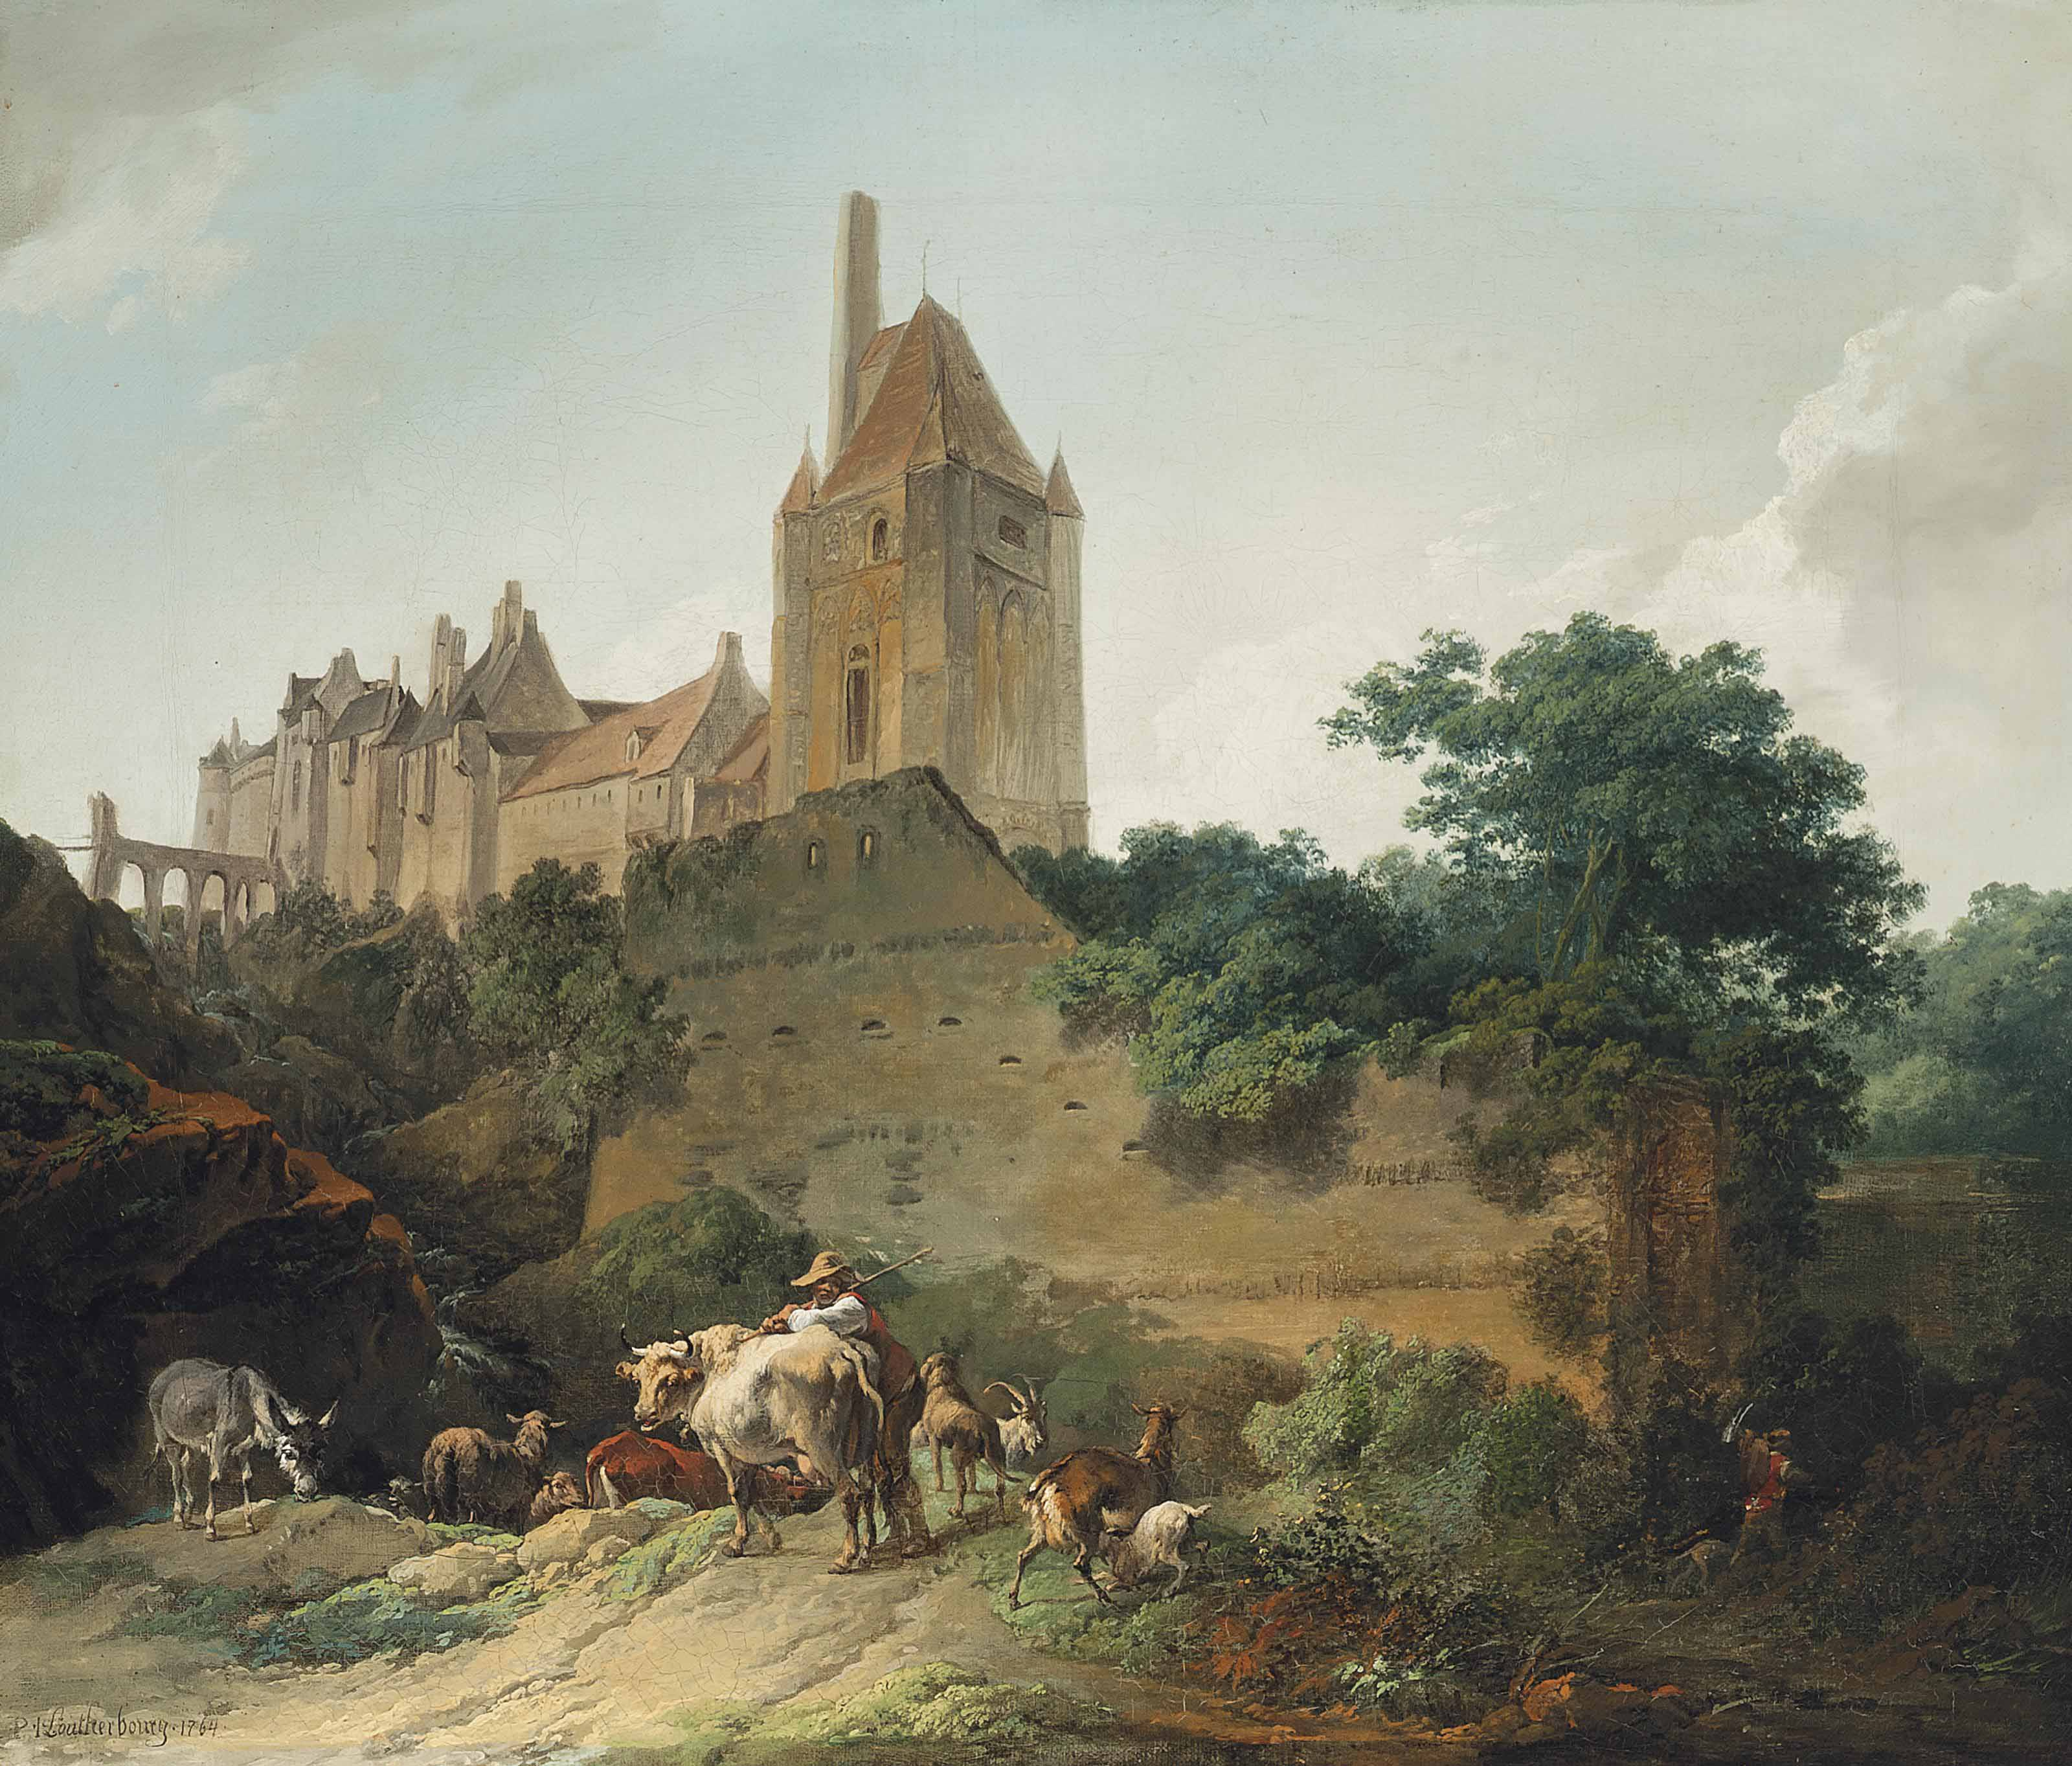 A view of a castle with a herdsman, his sheep, goats and a donkey